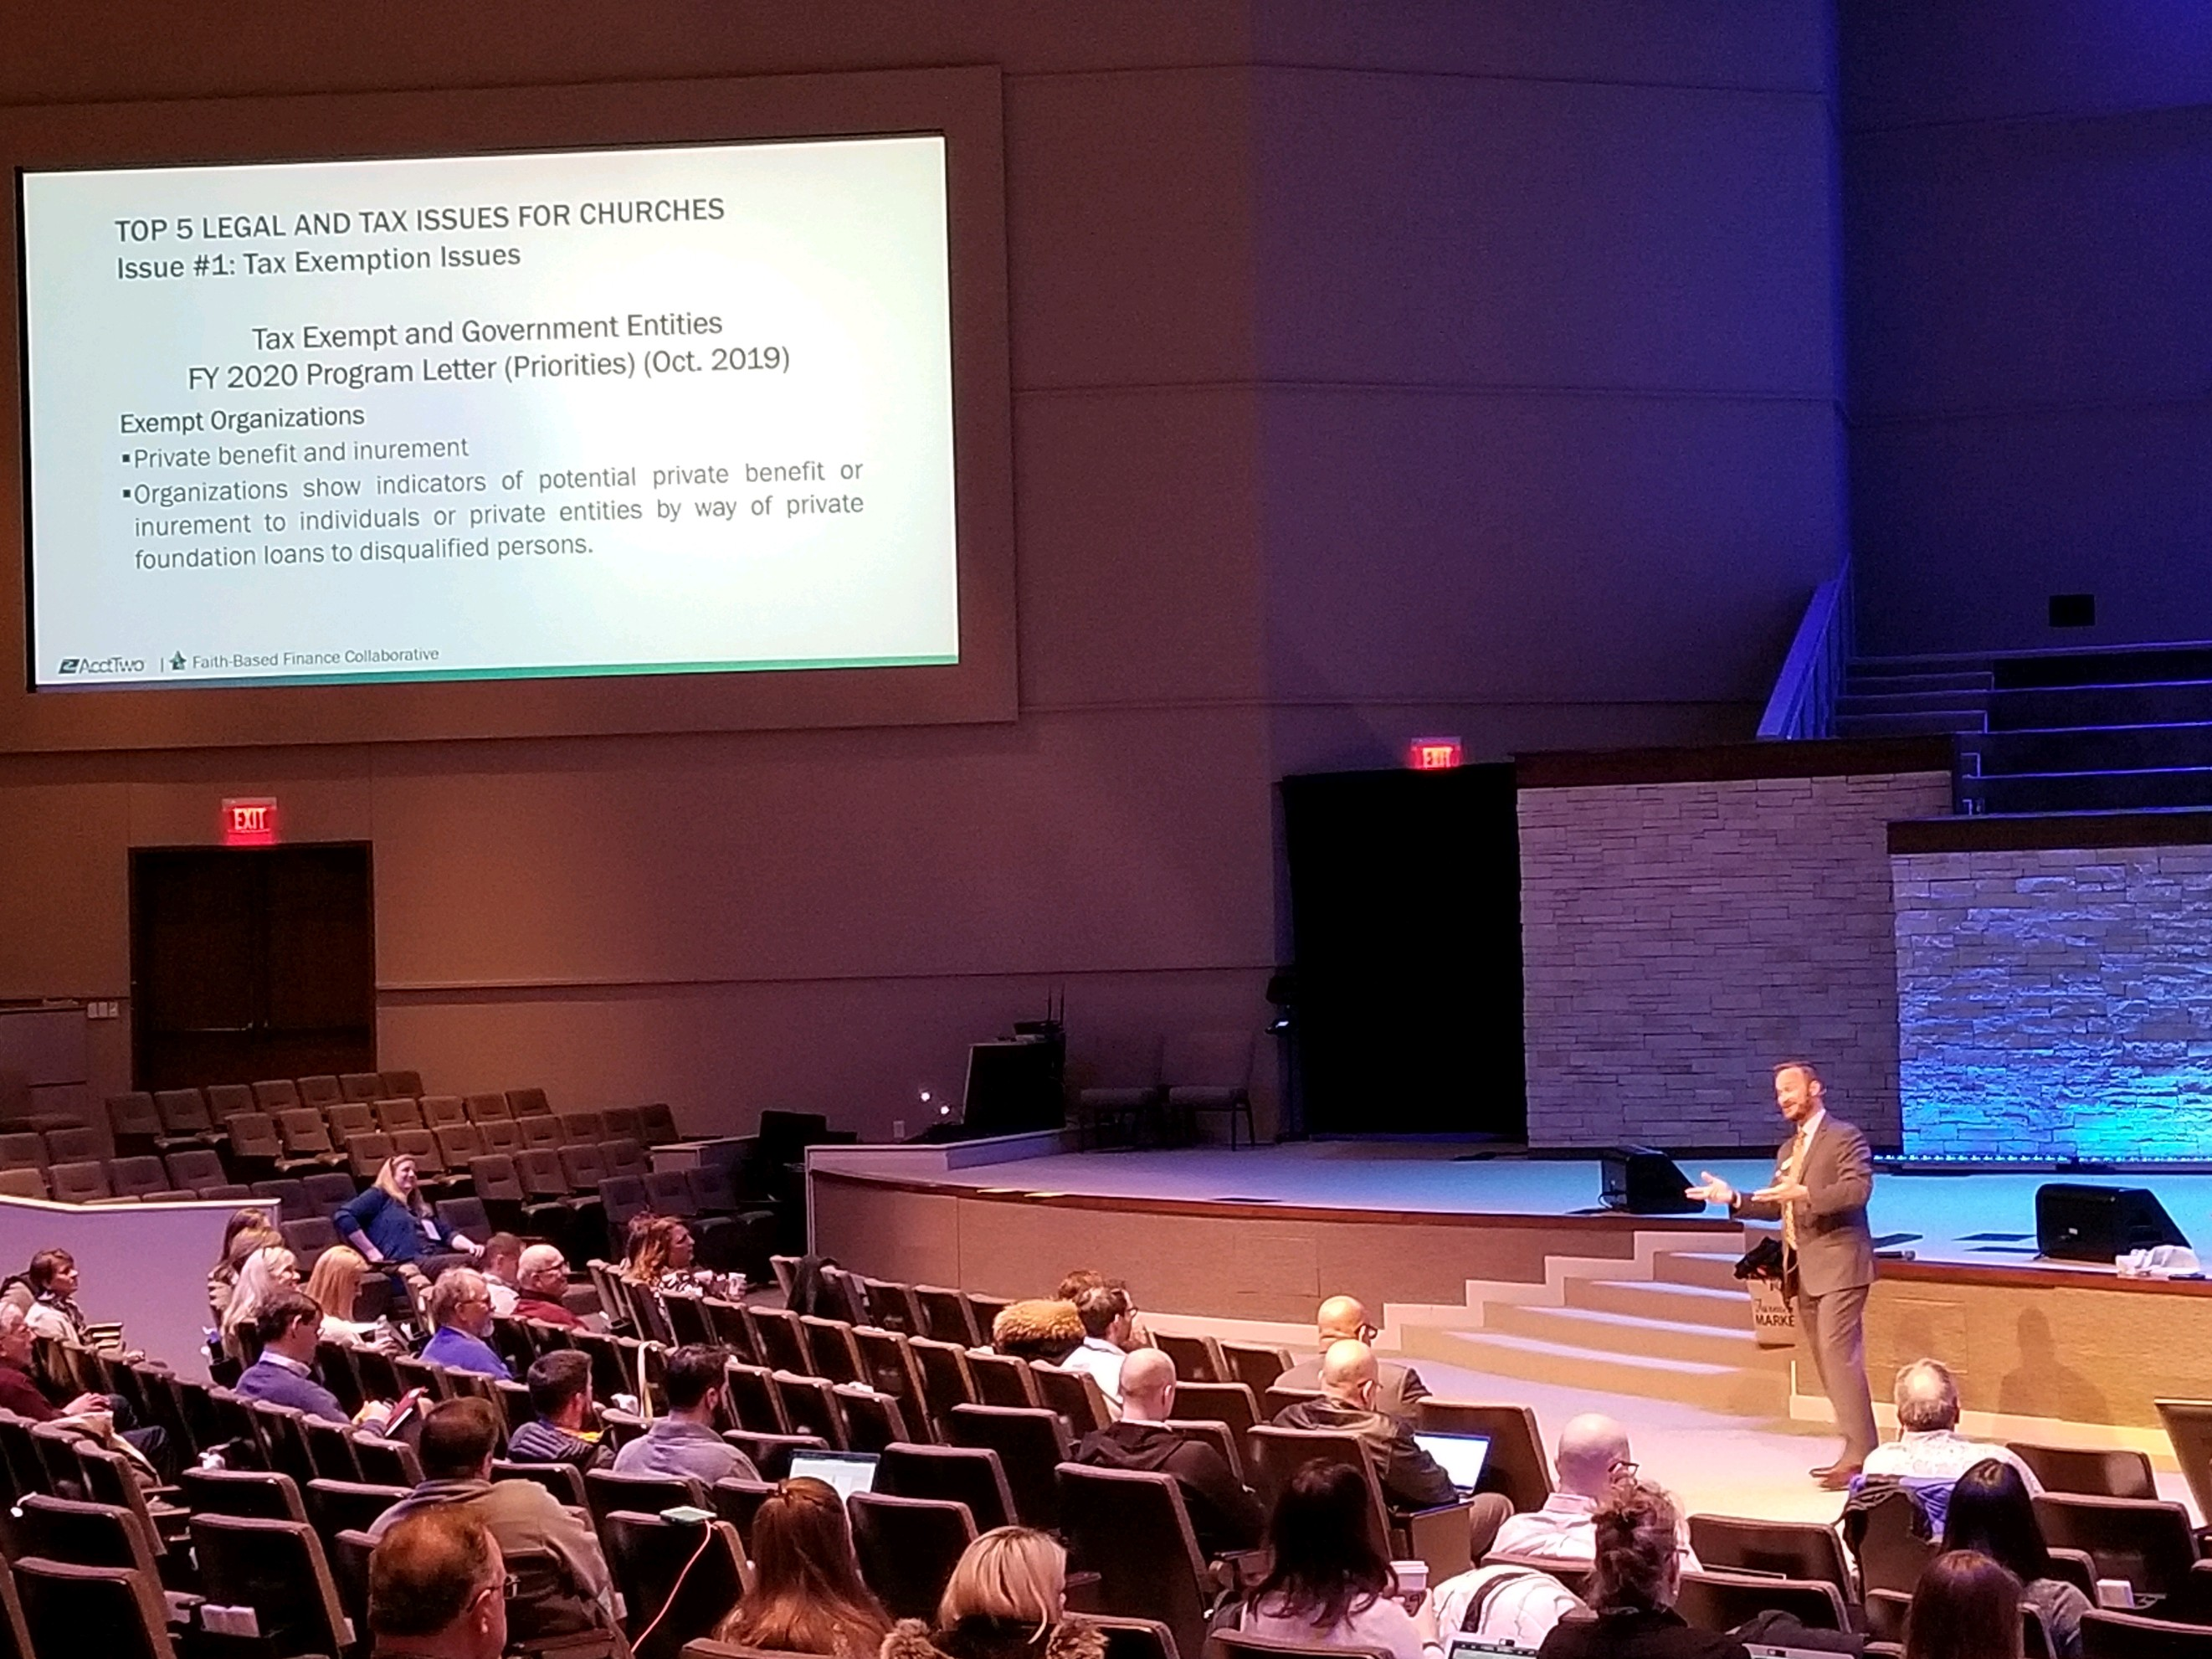 AcctTwo Fifth Faith Based Finance Collaborative Conference Top 5 Legal and Tax Issues for Churches